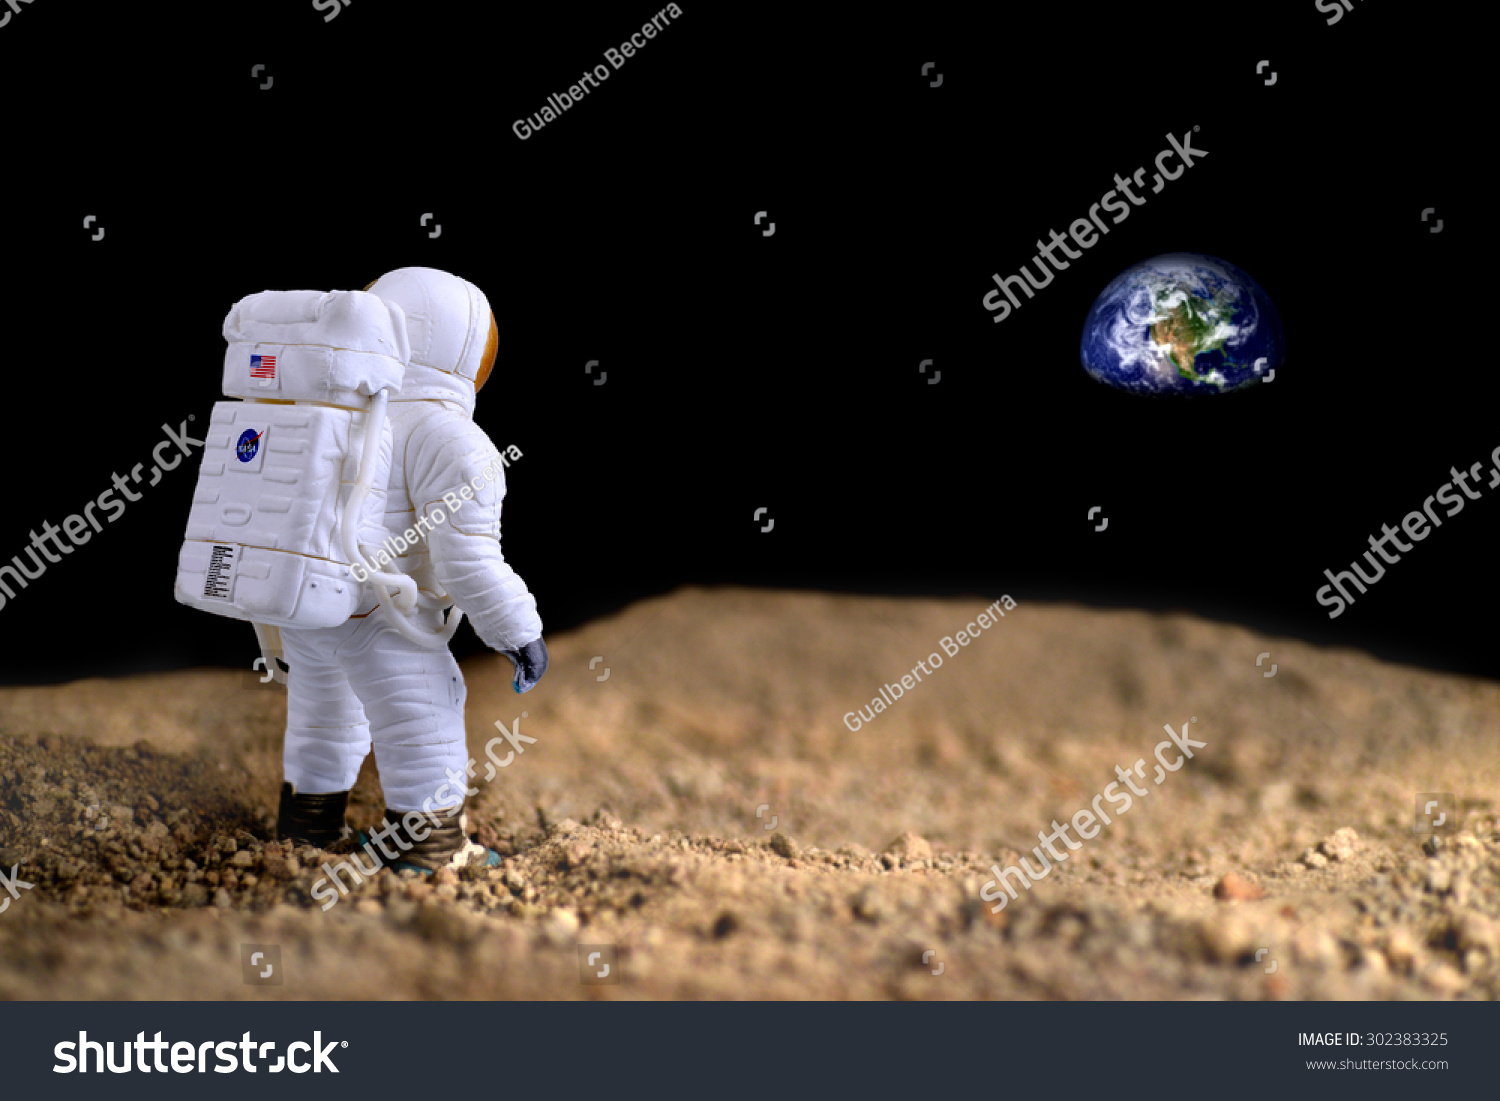 astronaut on moon earth background-#17